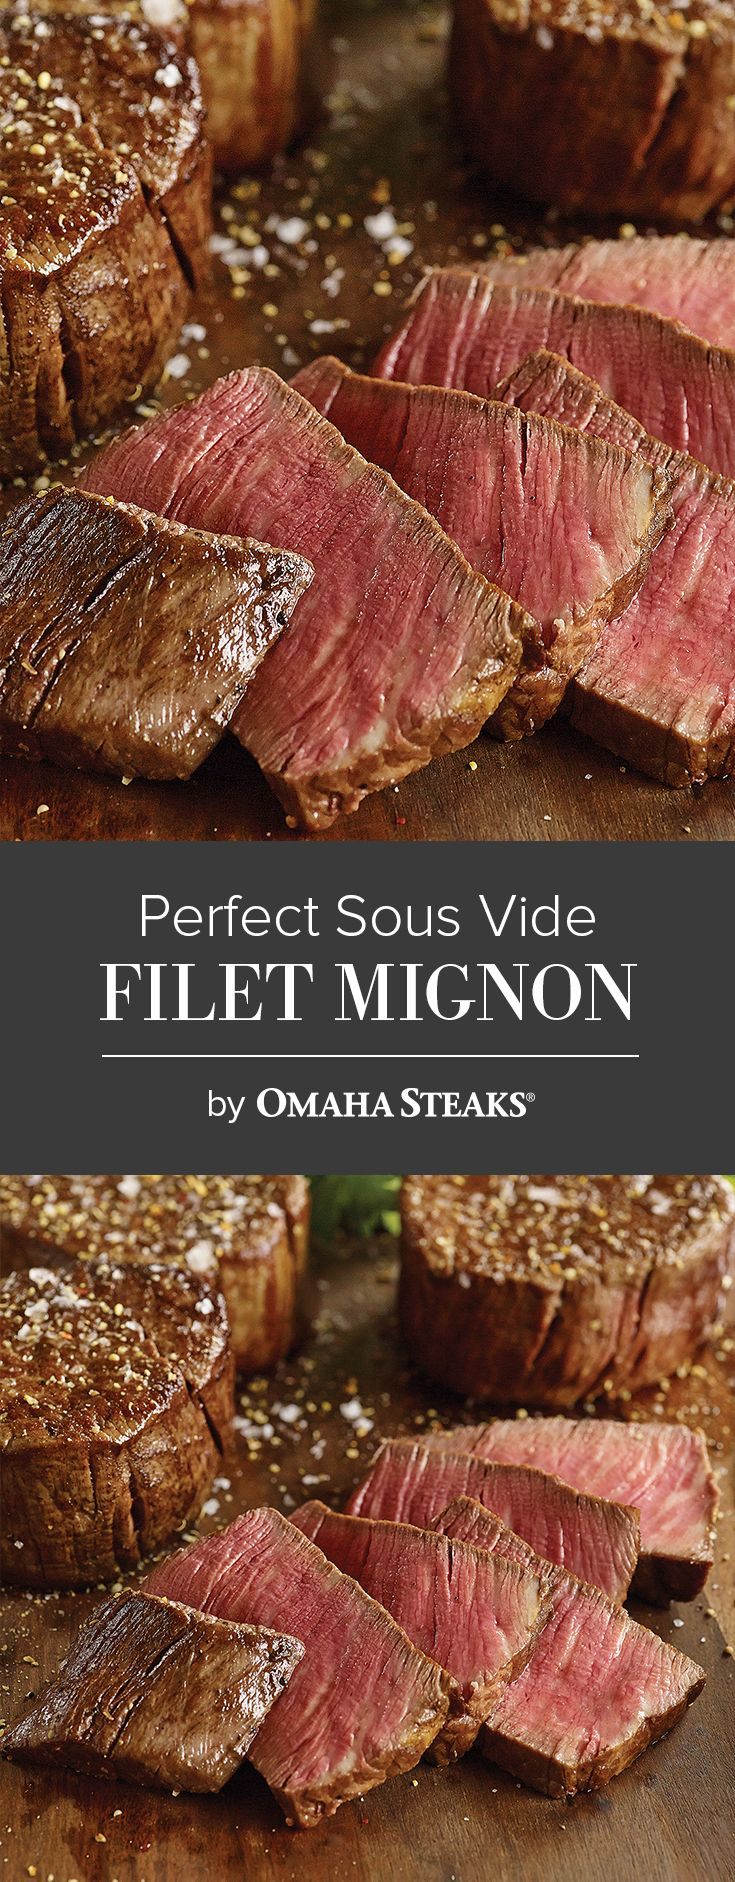 Perfect Sous Vide Filet Mignon A How To Guide Sous Vide Crusts